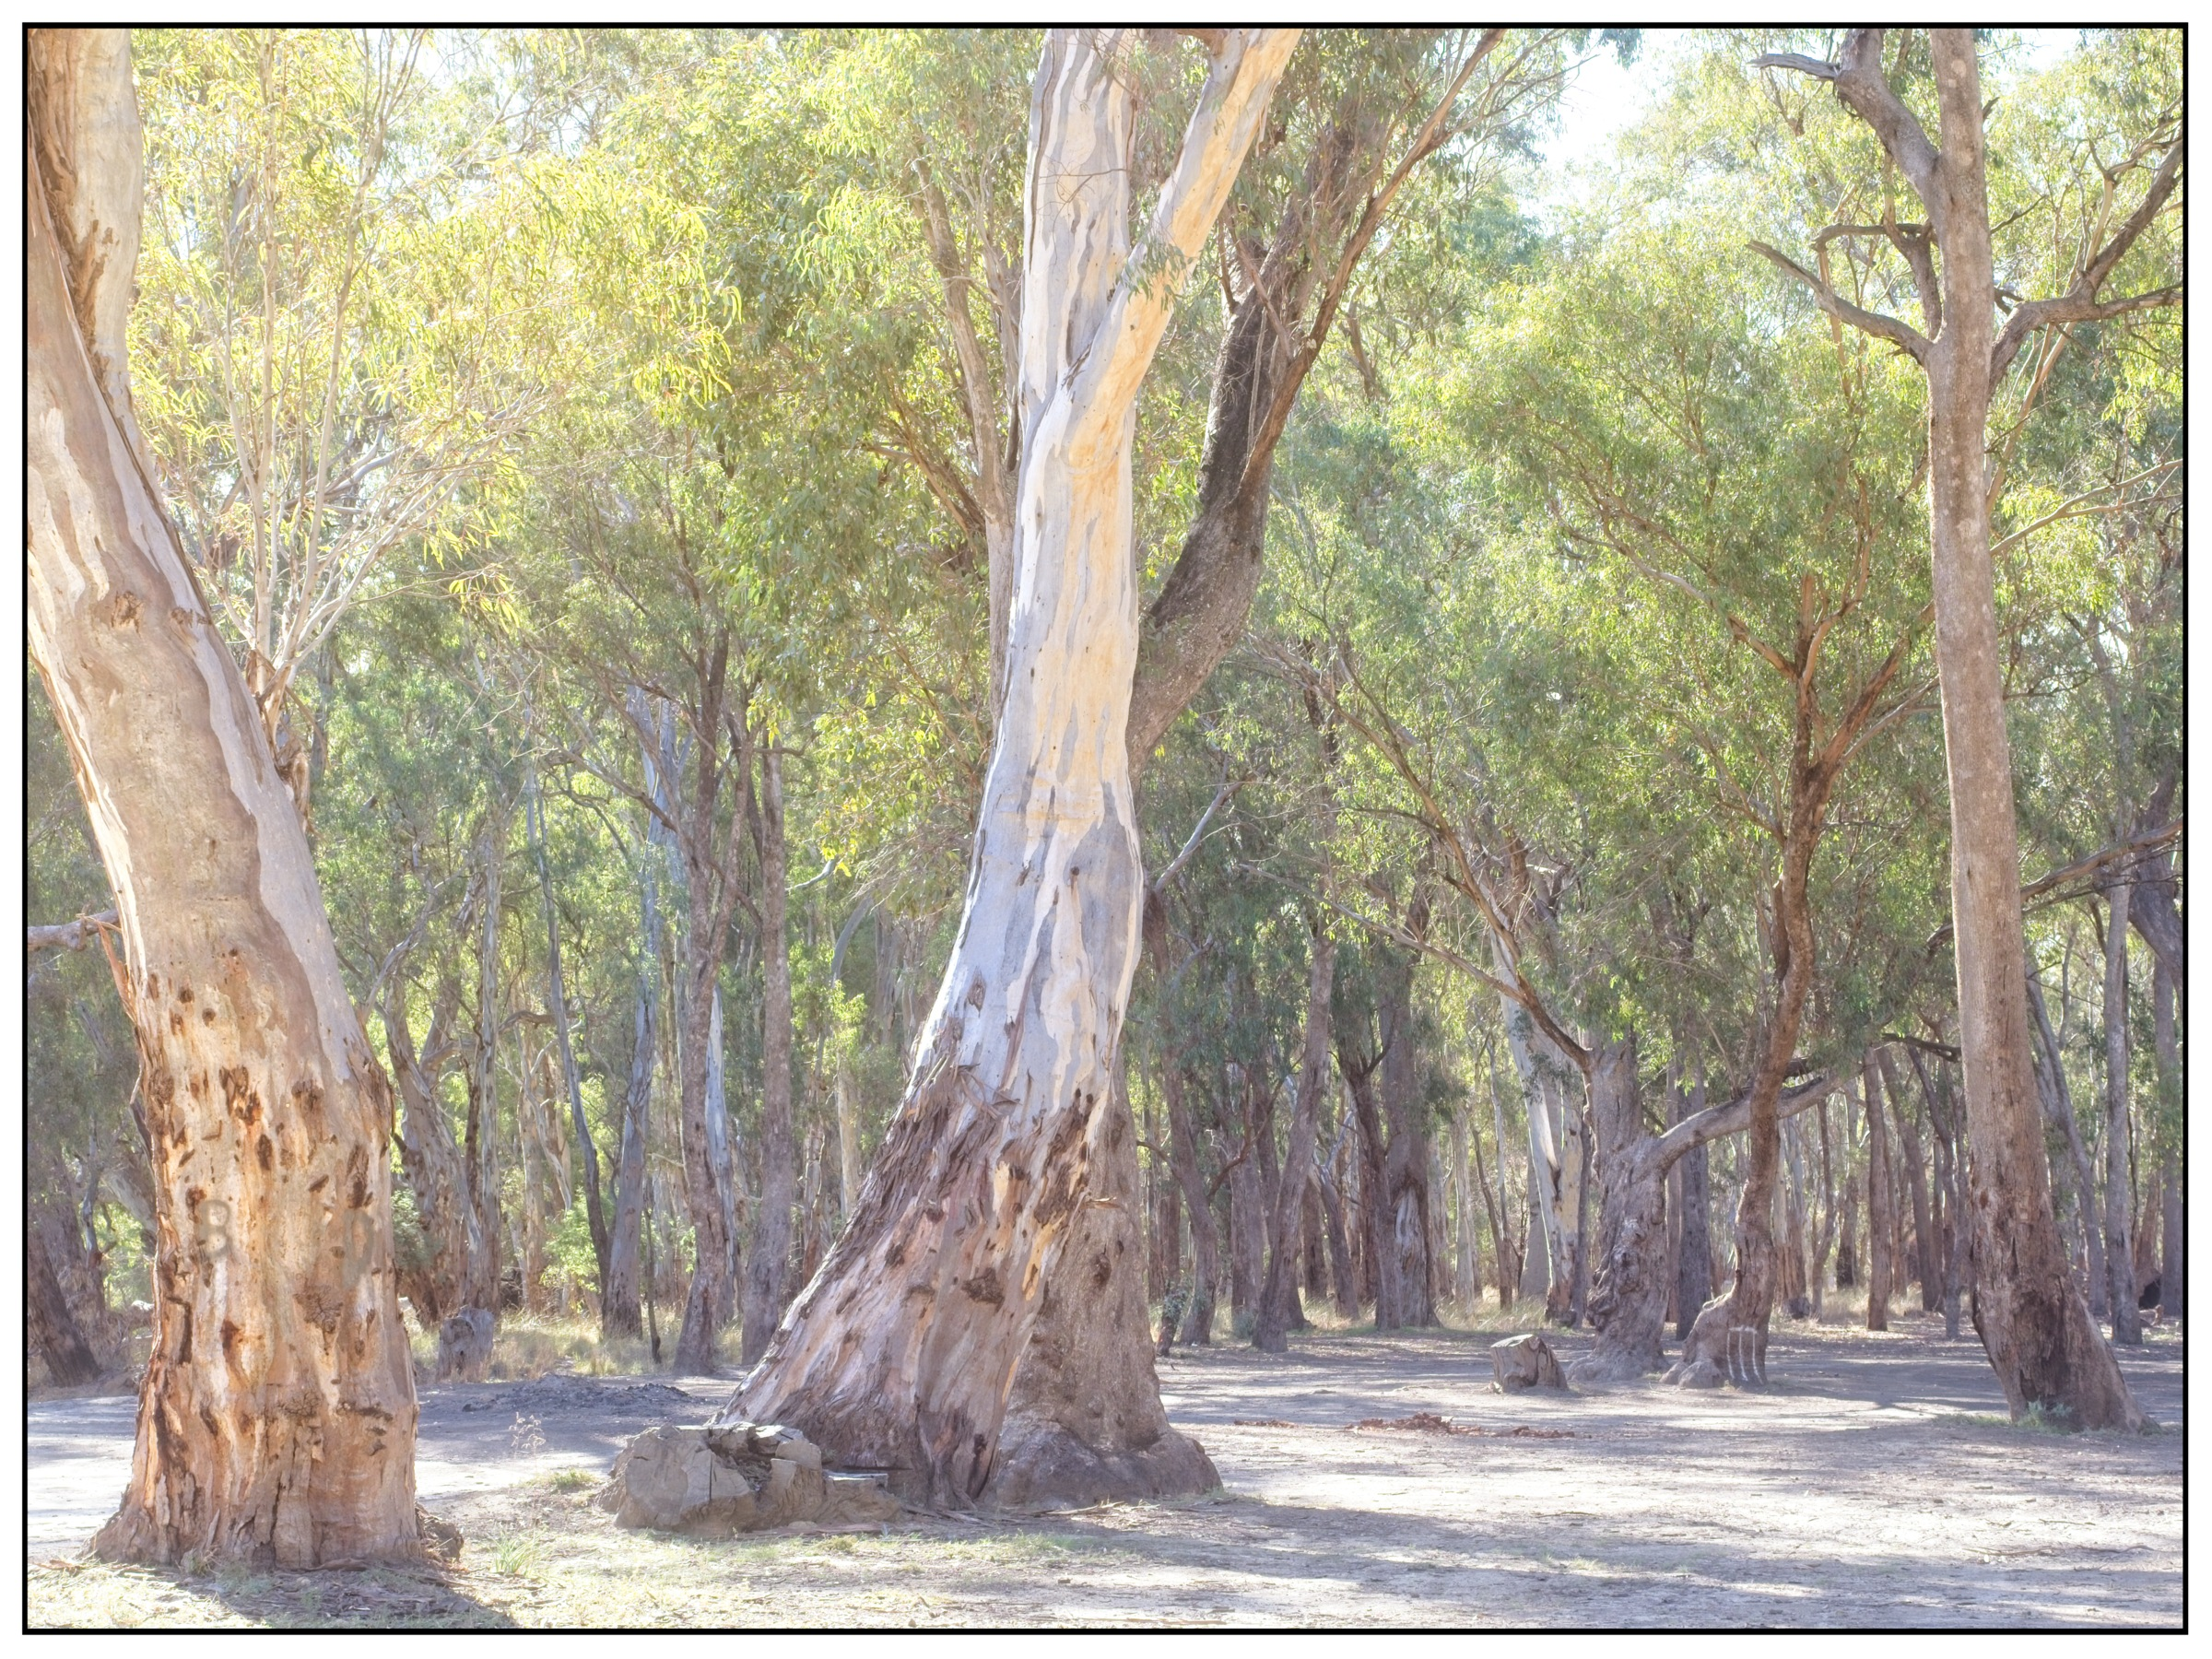 dispersed campsite along the Murray River with spray painted cricket stumps on a tree